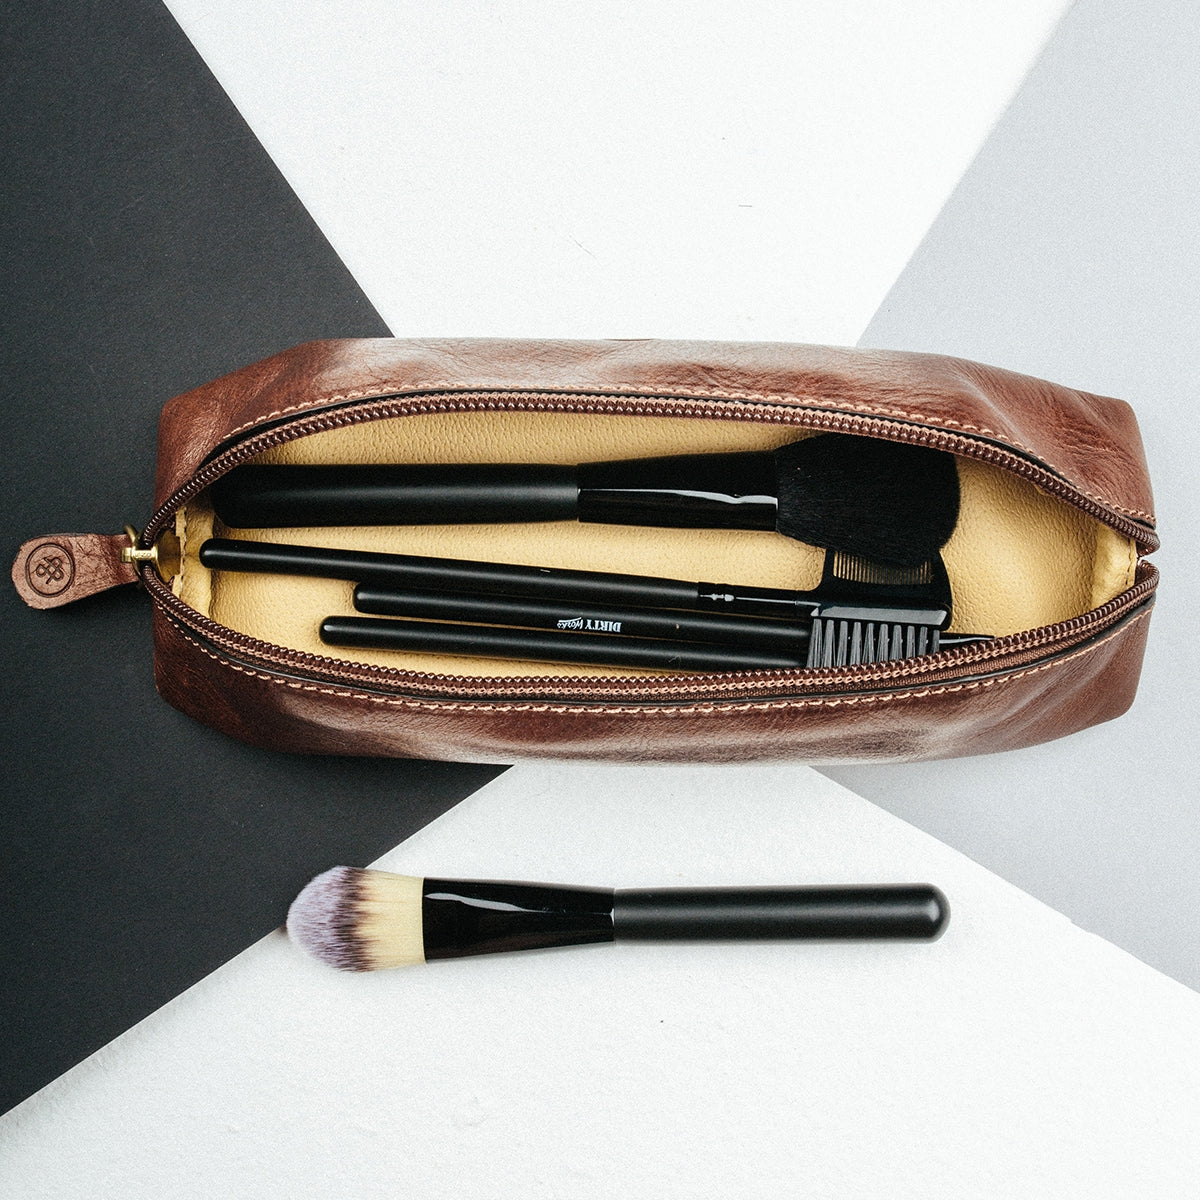 Image 7 of the 'Lorena' Leather Makeup Brush Case